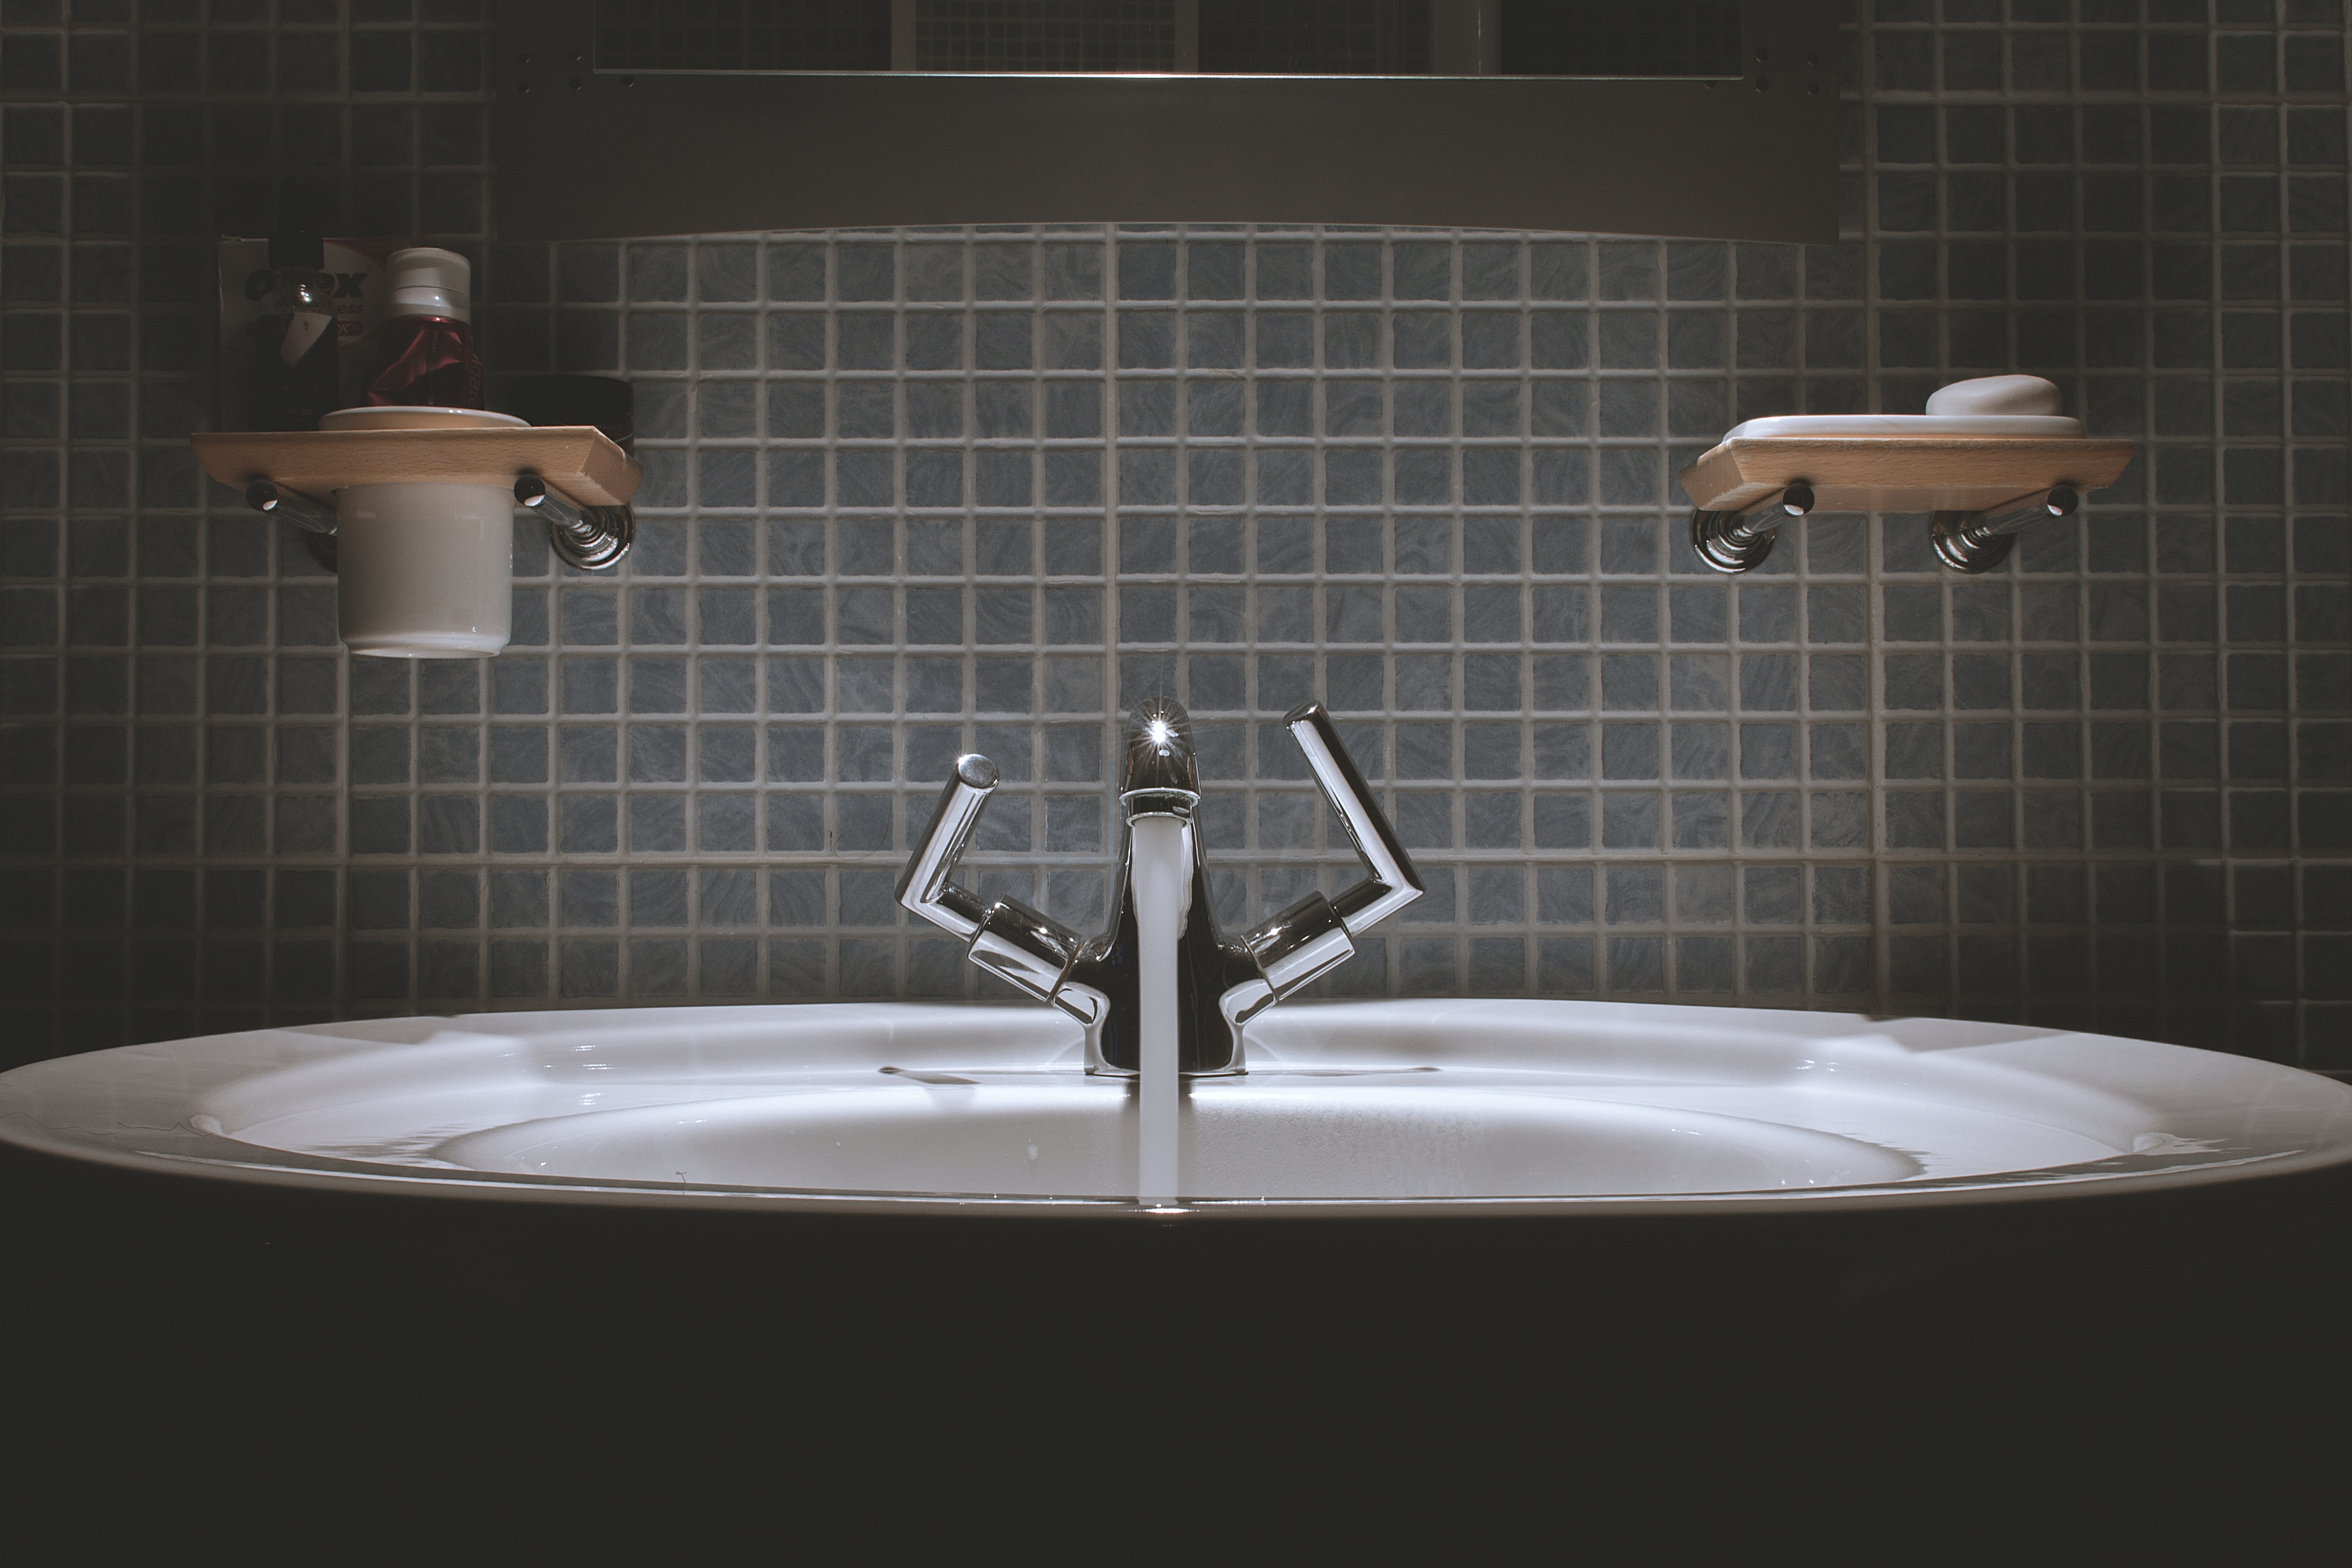 business-for-sale-bathroomware-supply-business-1